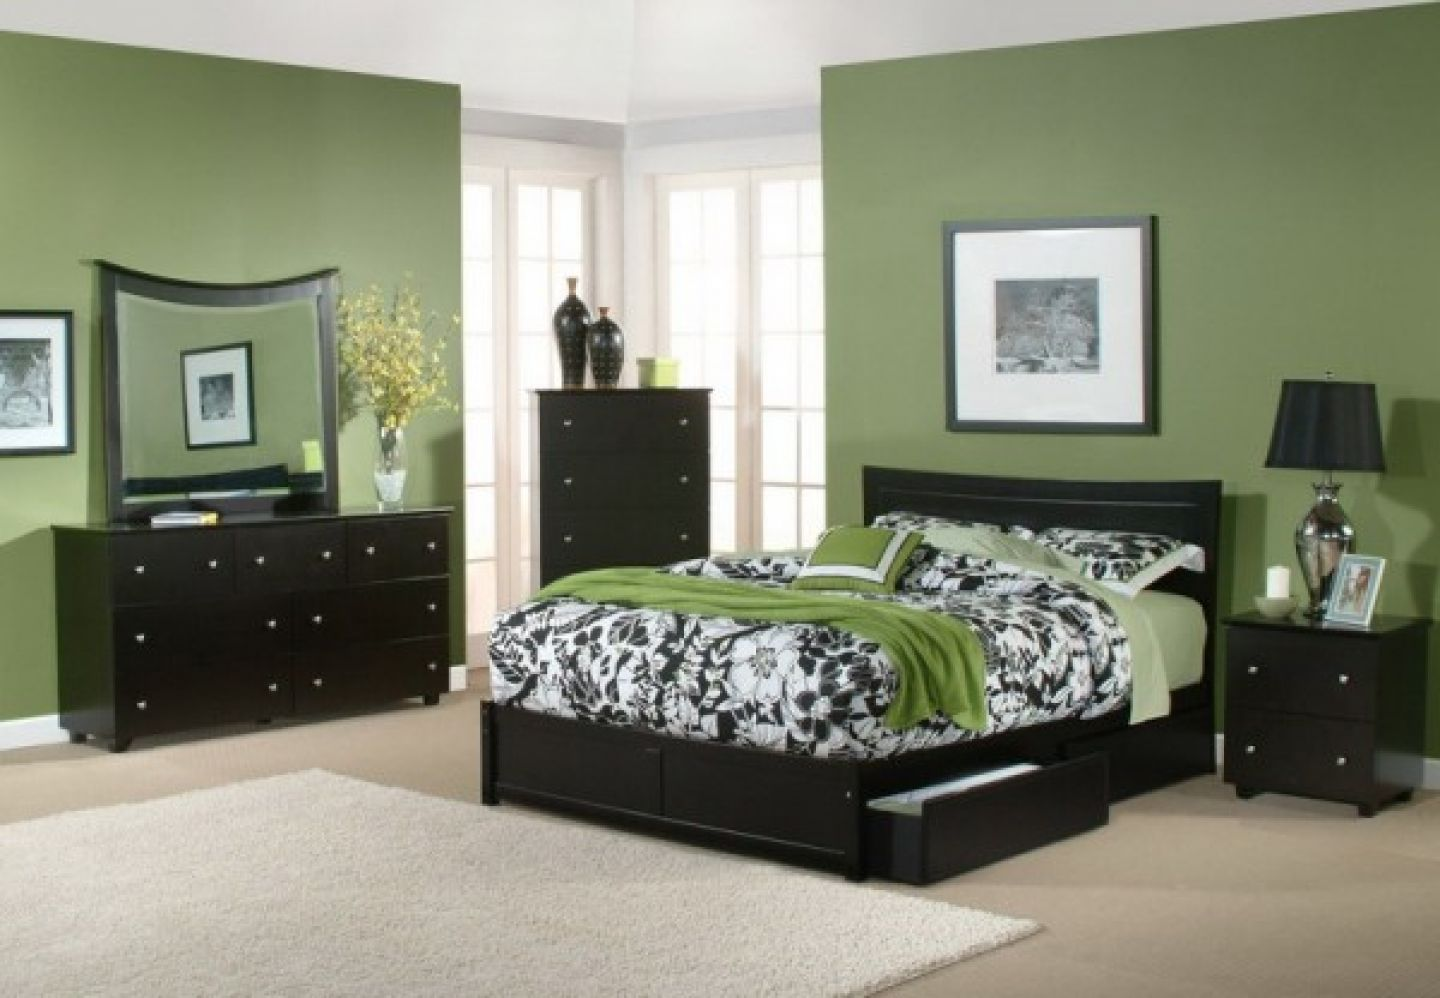 17 Best ideas about Green Master Bedroom Furniture on Pinterest   Pink  spare bedroom furniture  Green spare bedroom furniture and Preppy bedroom. 17 Best ideas about Green Master Bedroom Furniture on Pinterest